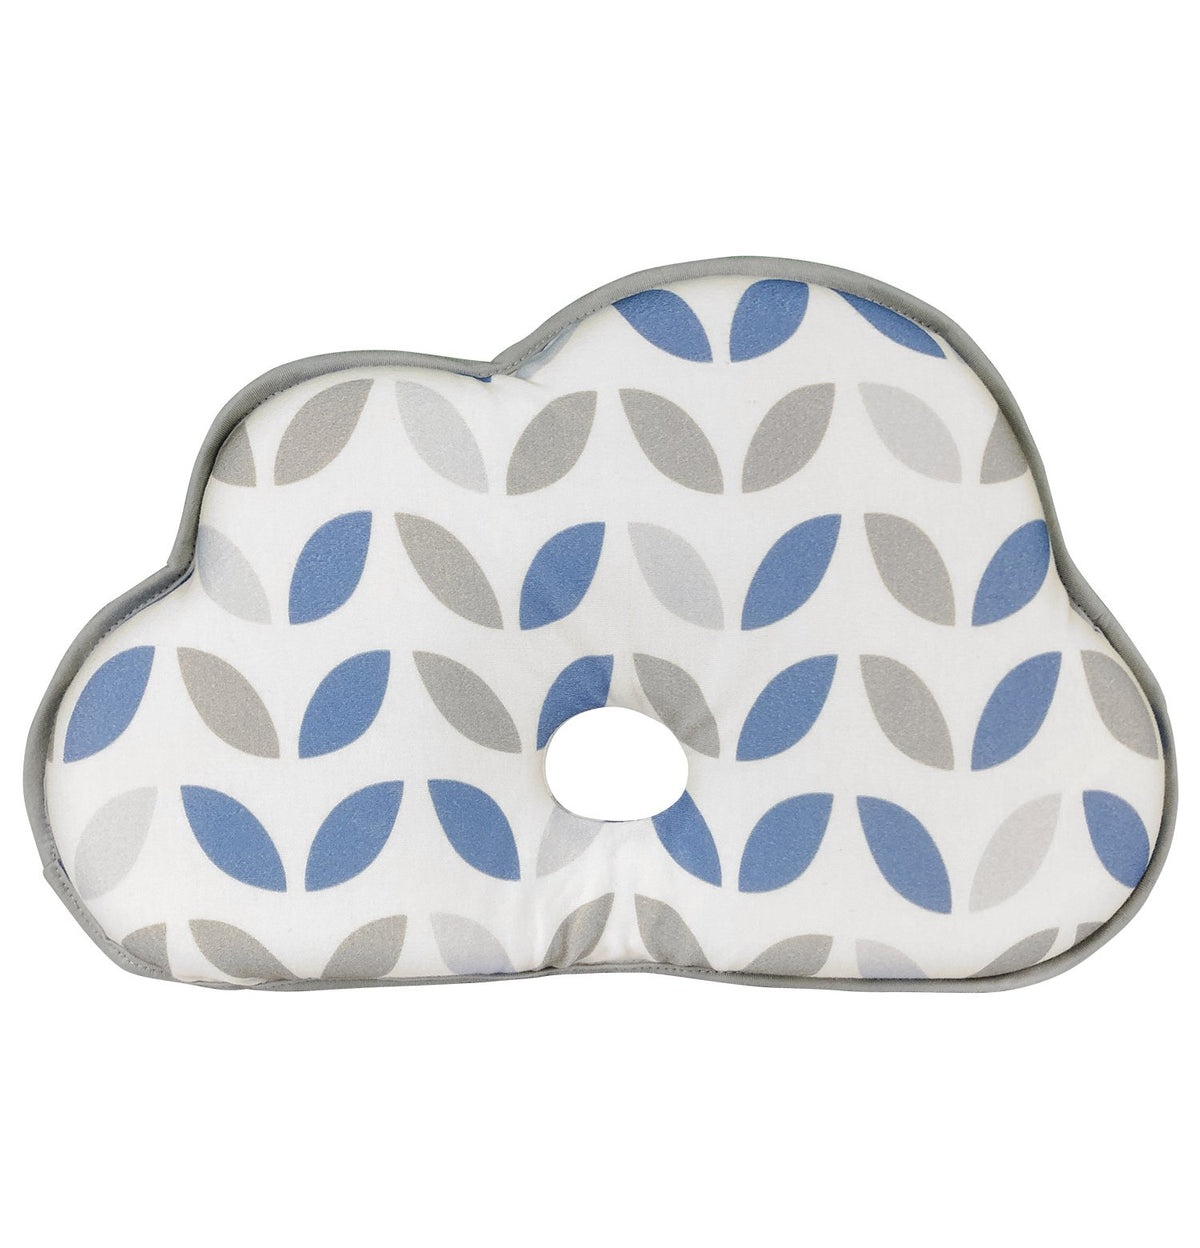 Bonbijou Snug Infant Memory Foam Pillow